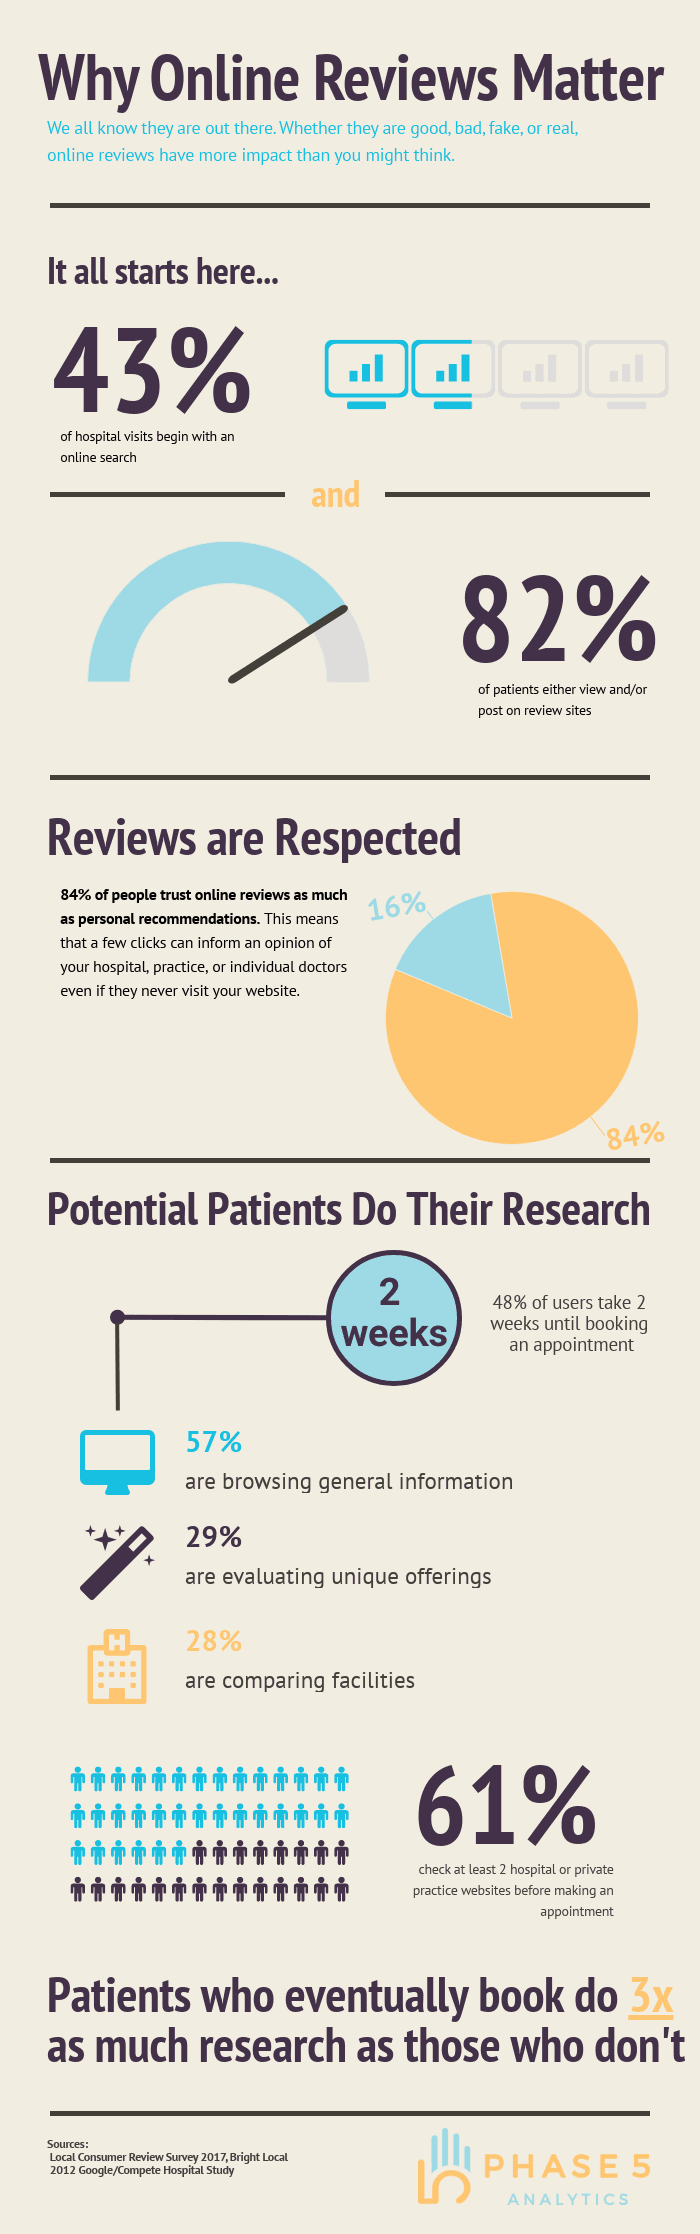 Why Online Reviews Matter